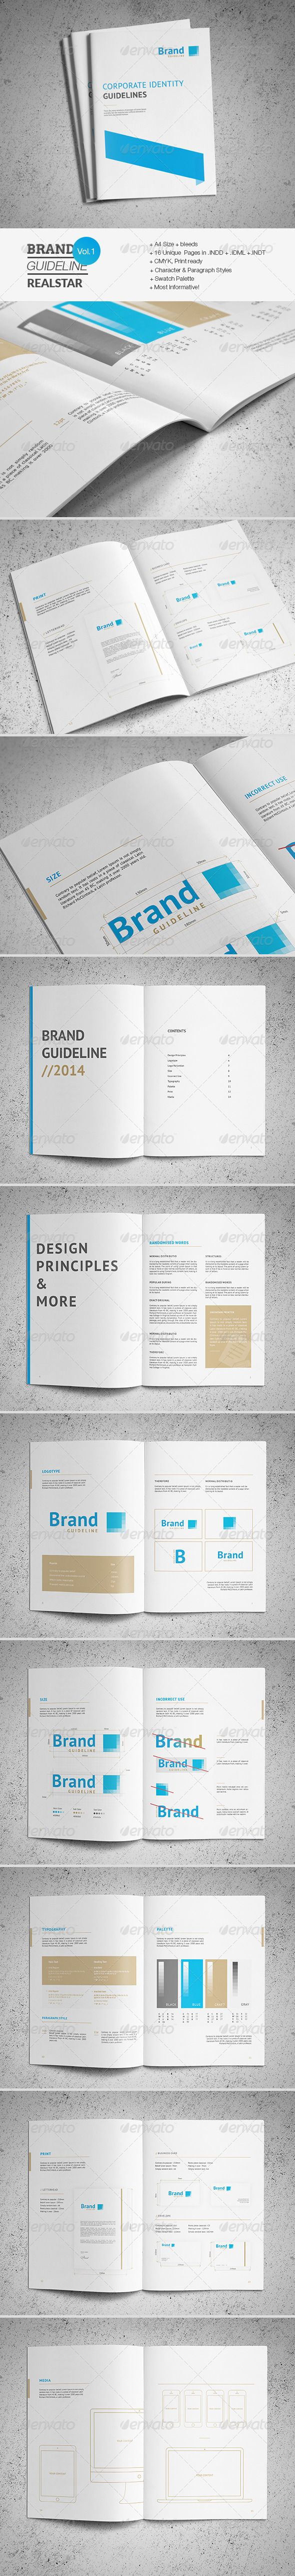 Brand Guideline Template — InDesign INDD #clean #minimal • Available here → https://graphicriver.net/item/brand-guideline-template/7480156?ref=pxcr